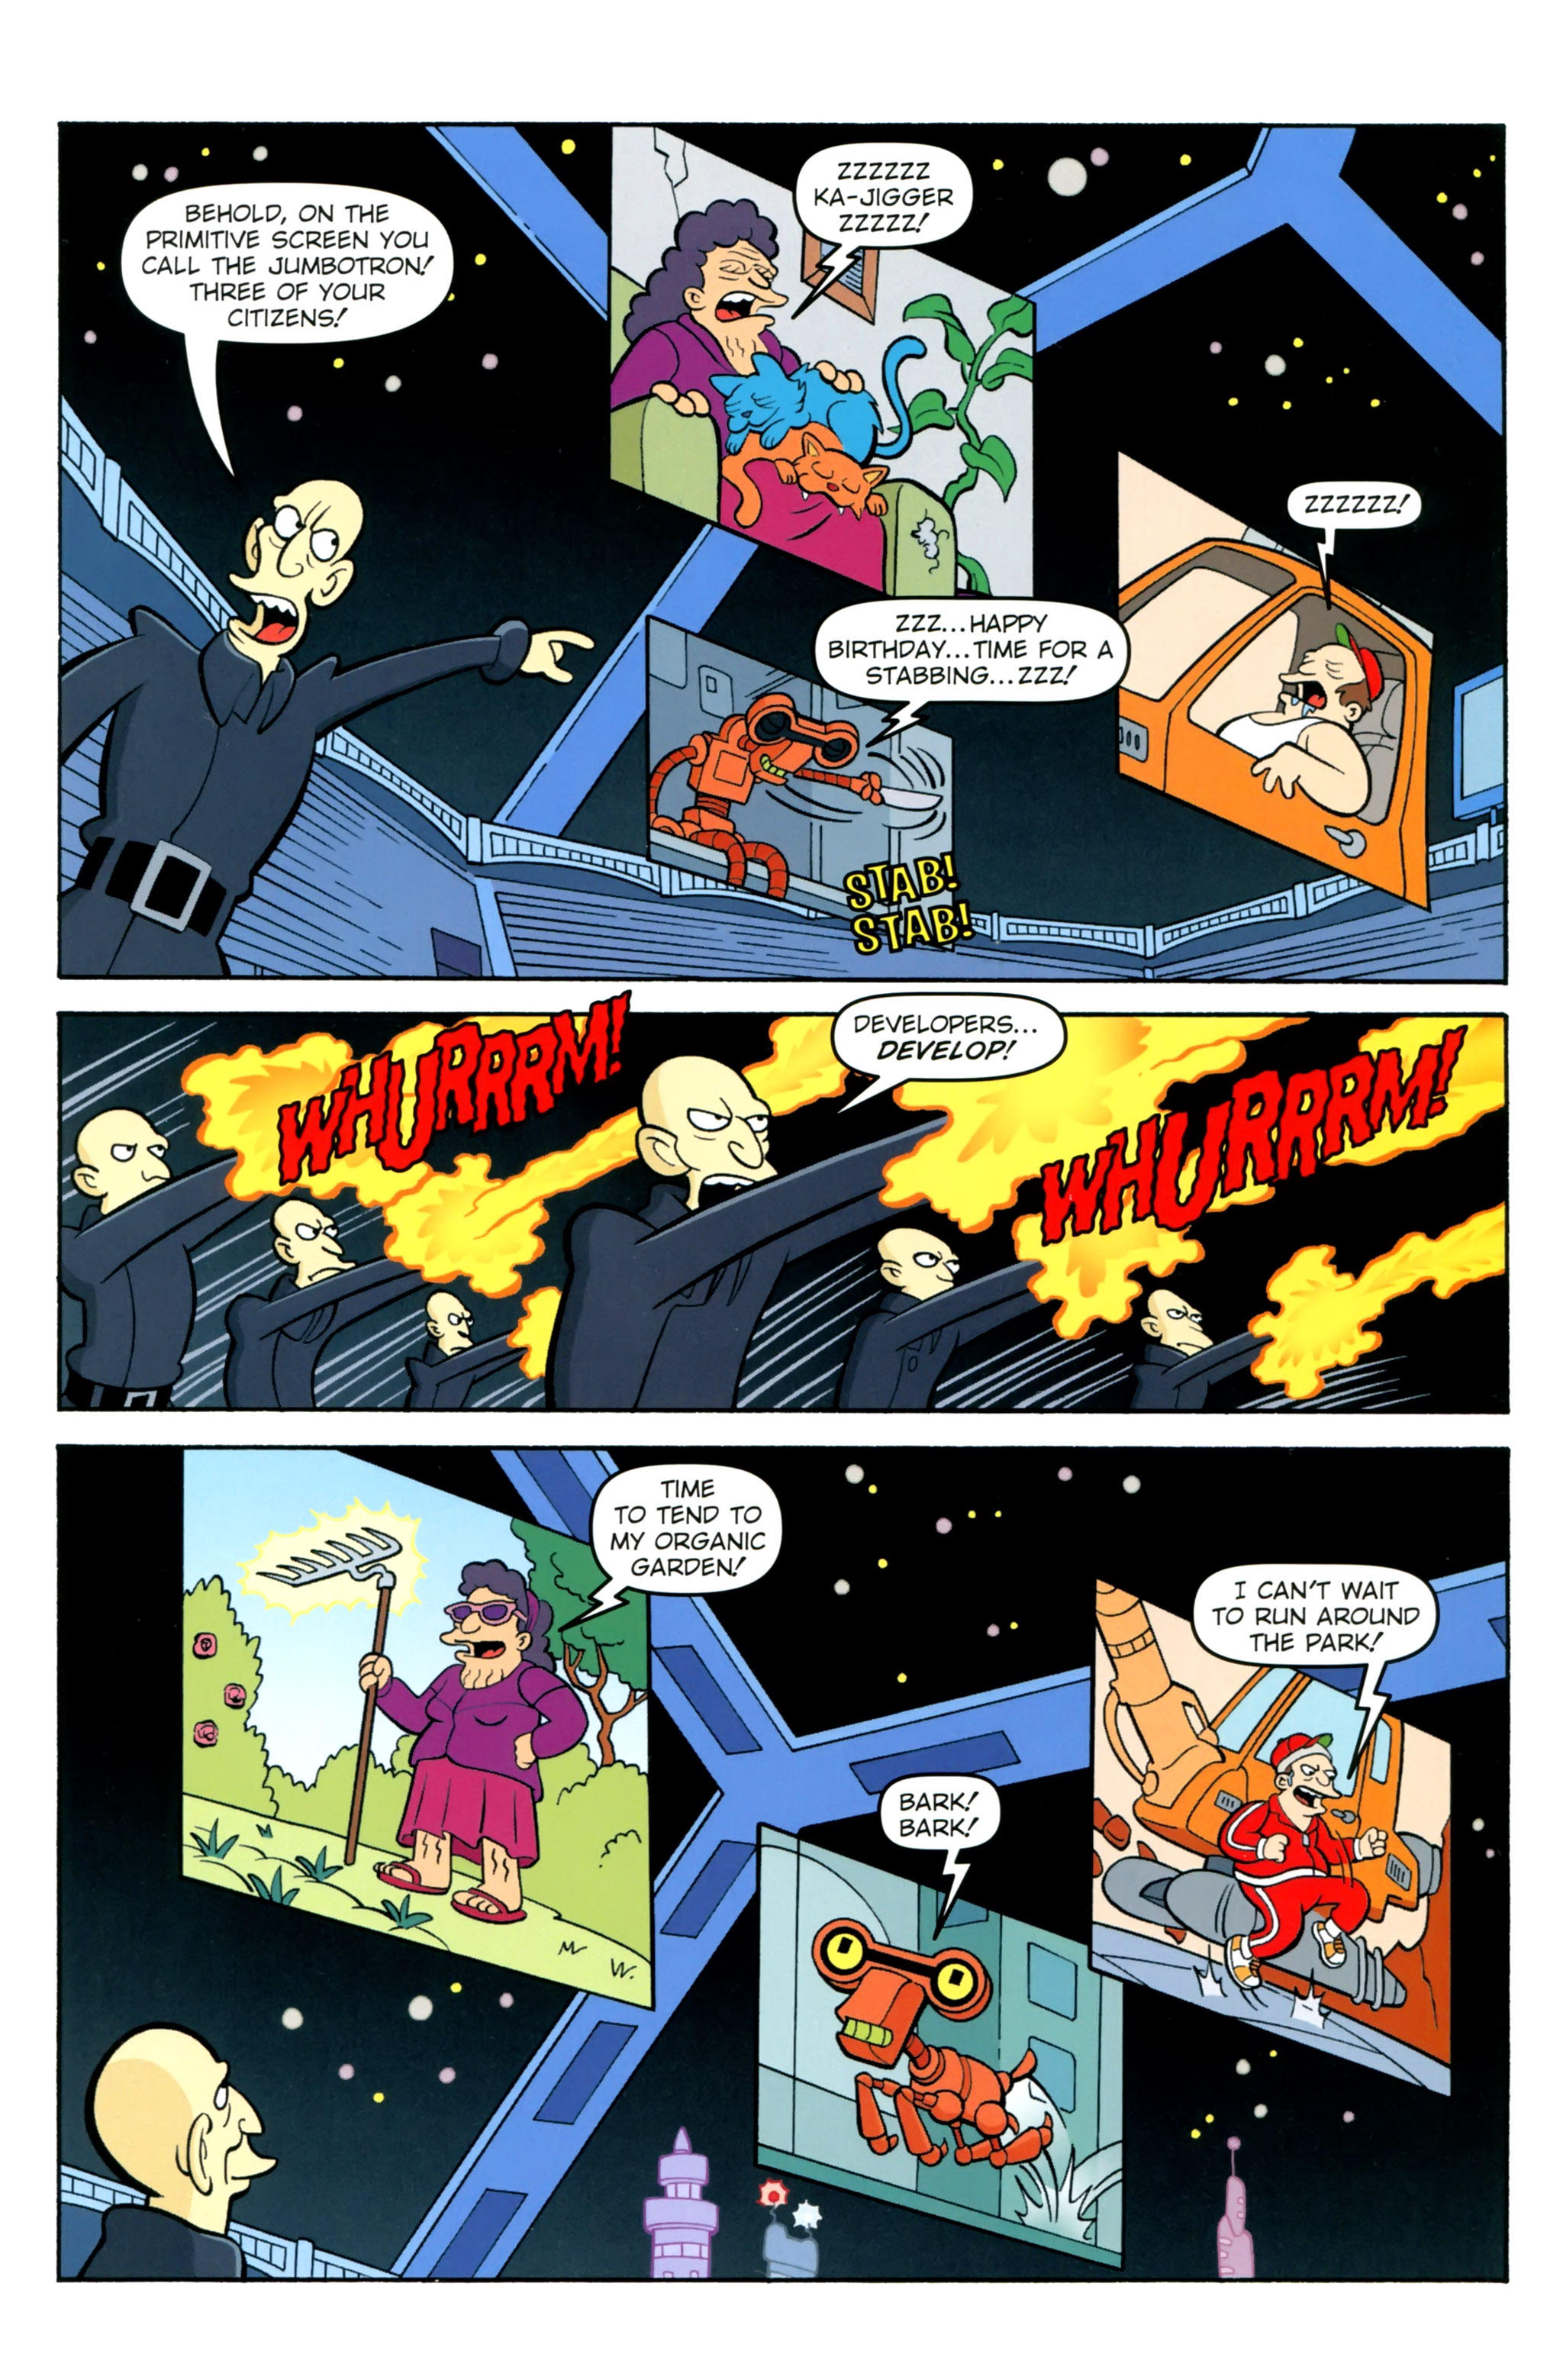 Futurama Comics futurama comics #77 - read futurama comics issue #77 page 20